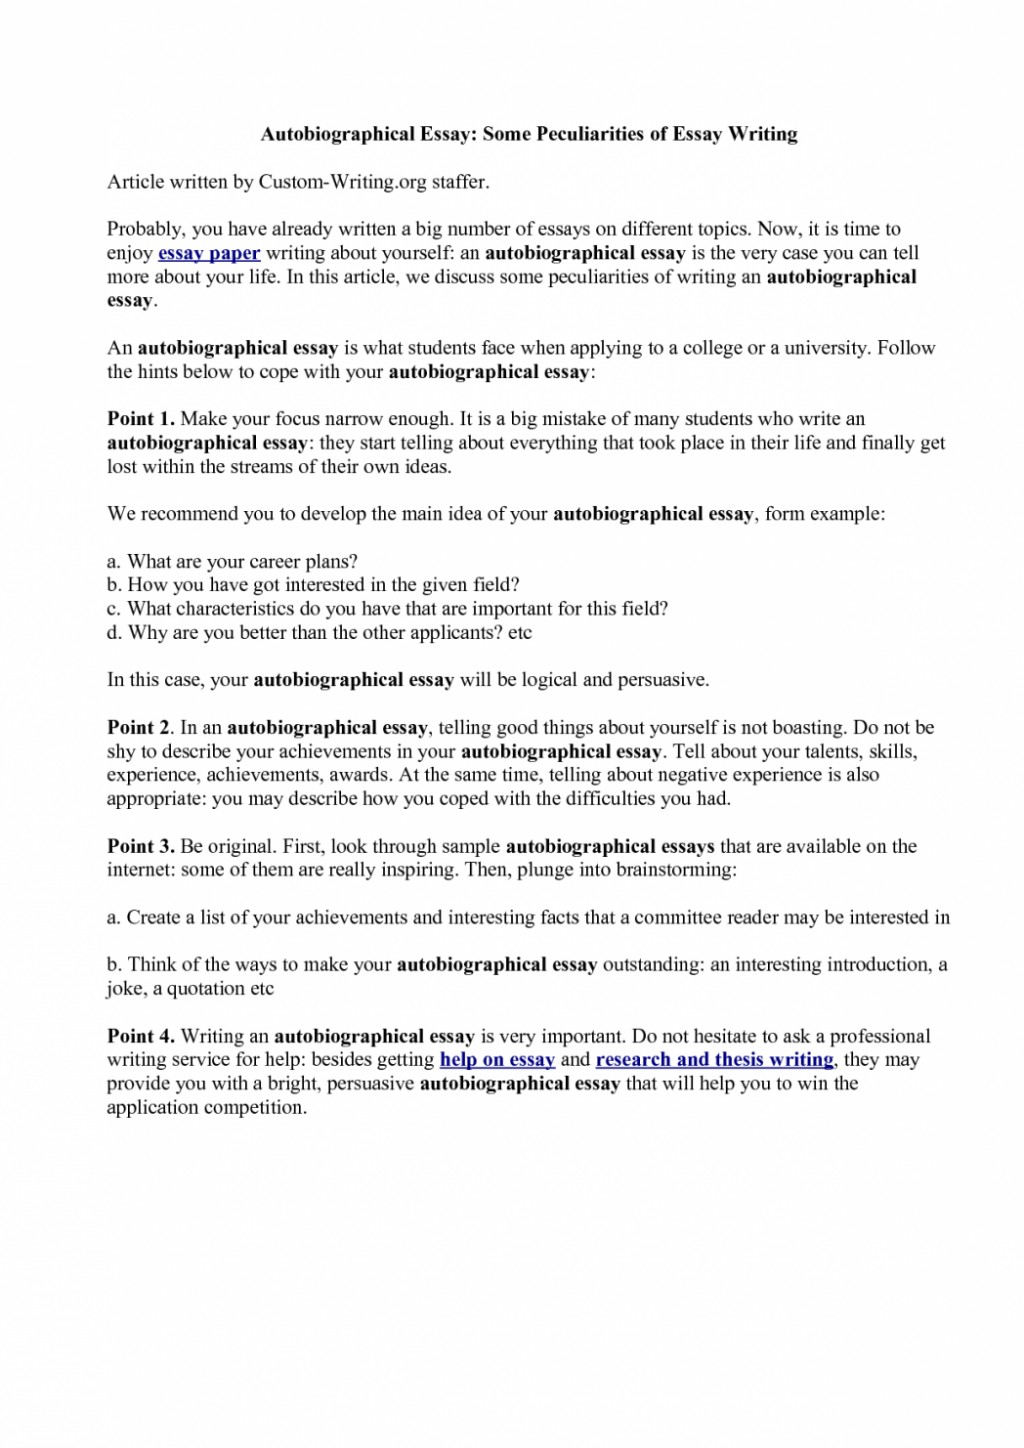 005 How To Start Autobiography Essay Example Of Telling About Yourself Shawn Weatherly Writing An Luxury Write Autobiographical For Job Written Graduate School Outline Singular Annotated Bibliography Examples A Good Scholarship Large